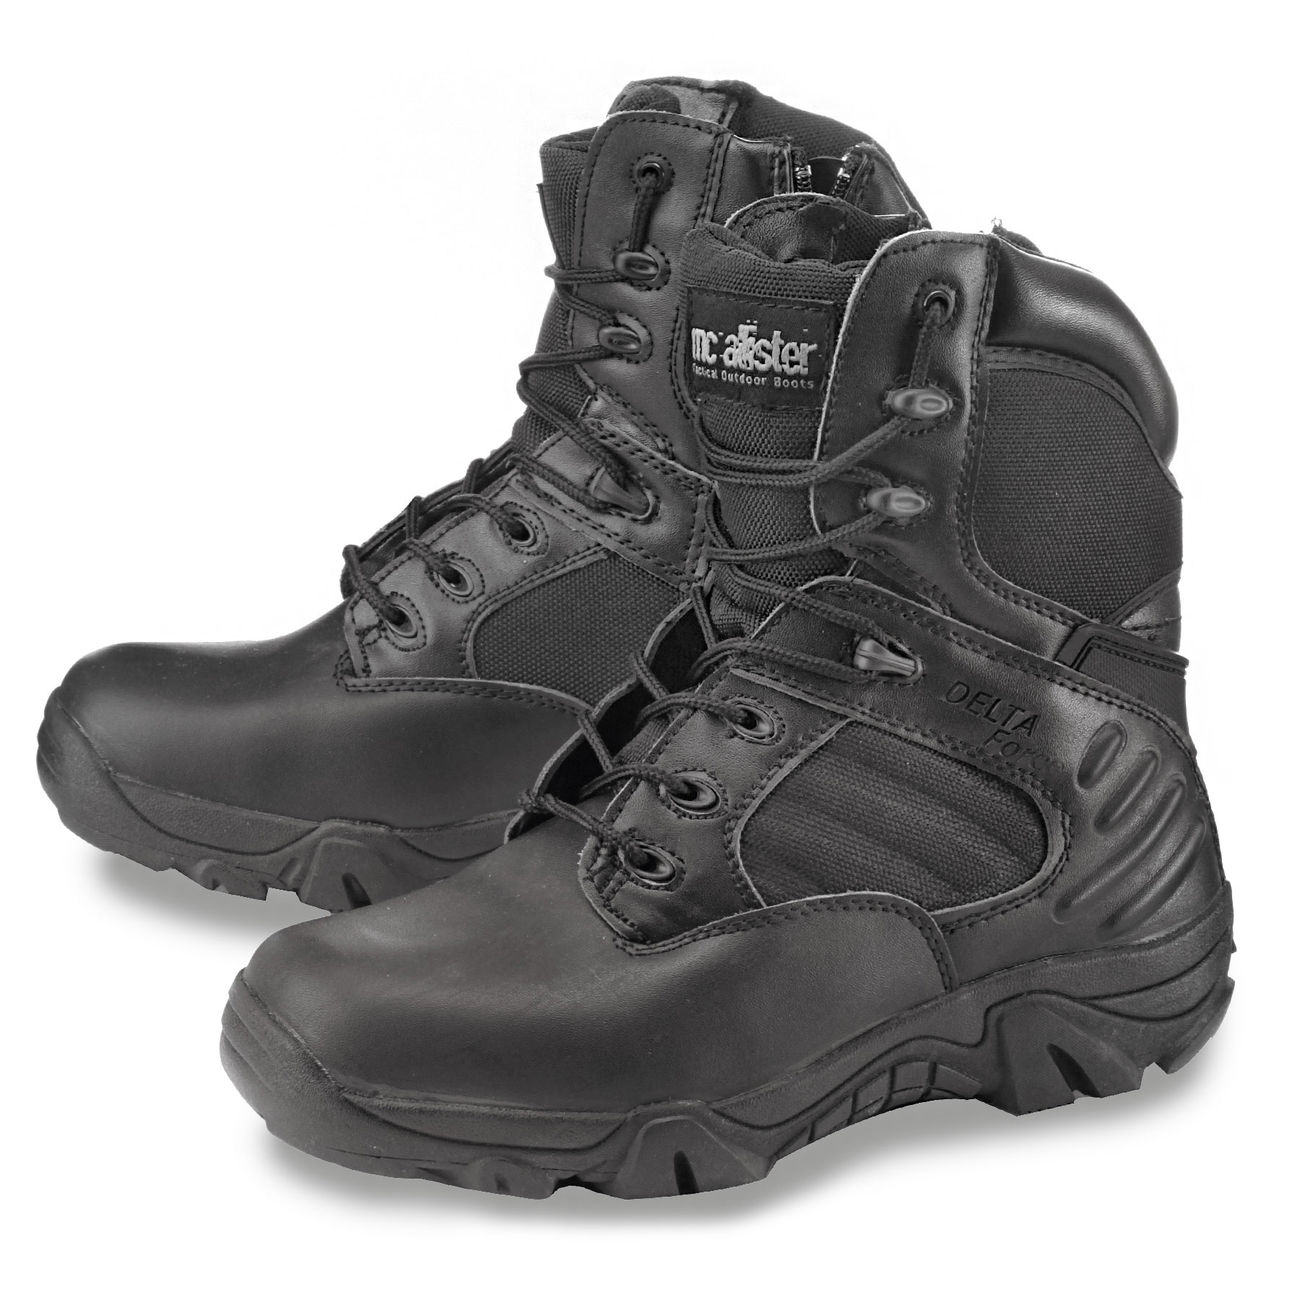 McAllister Stiefel Delta Force Tactical Outdoor Boots schwarz 4